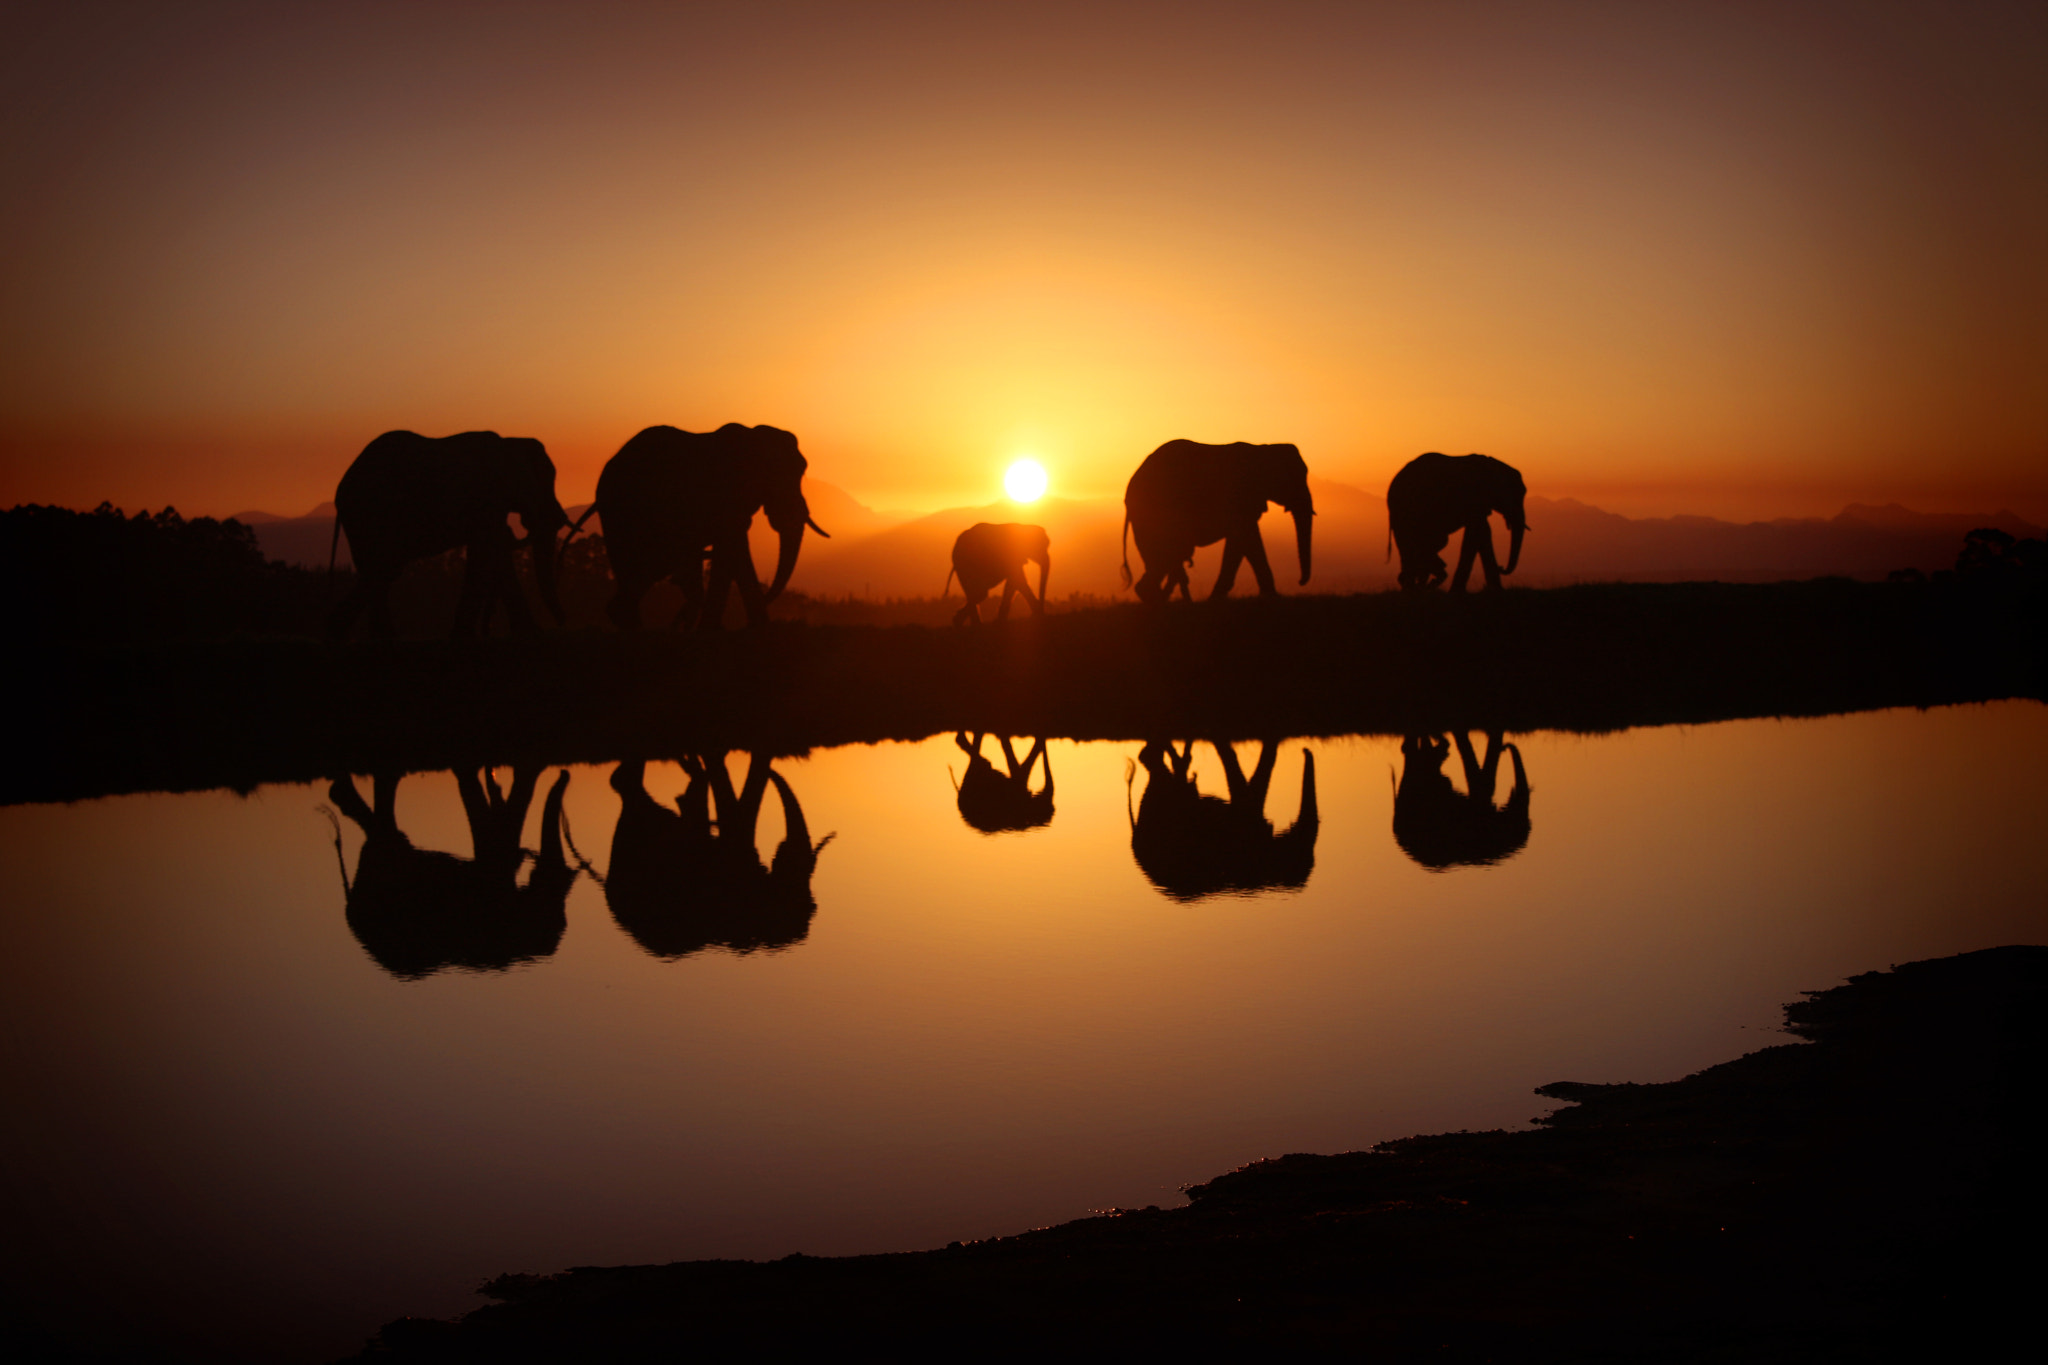 Photograph Elephants in Sunrise by Alex Laurs on 500px